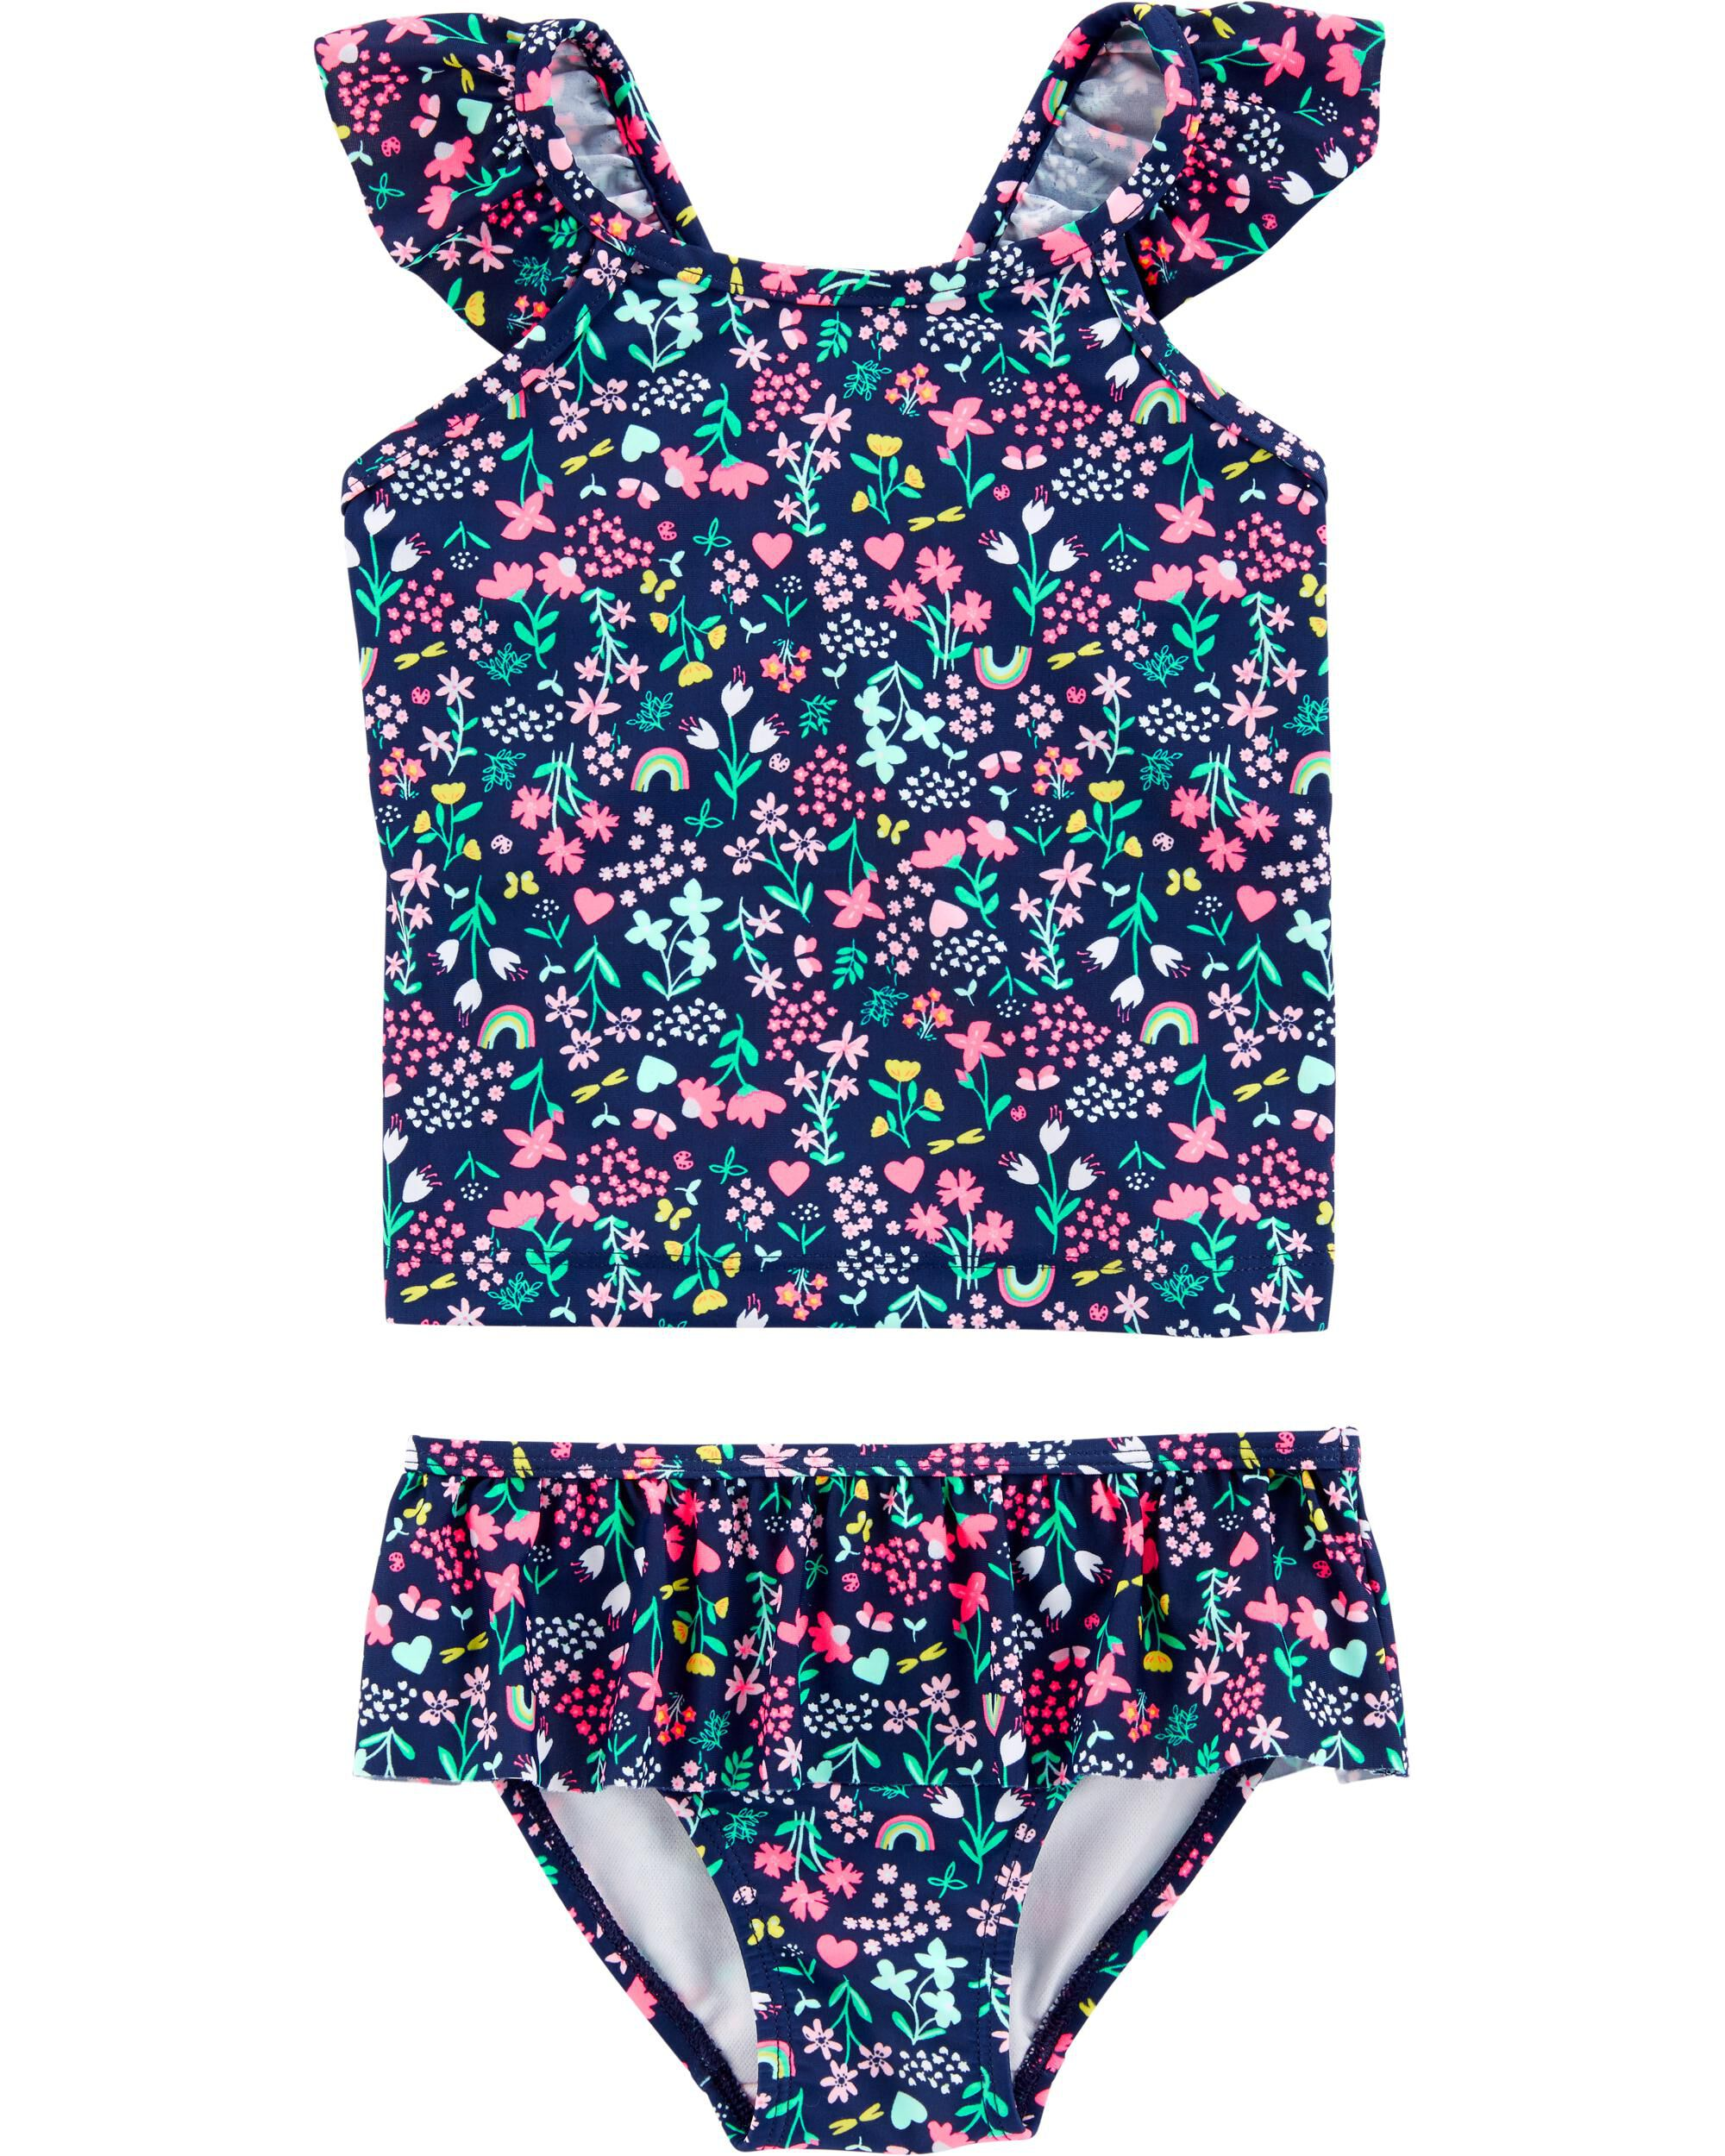 6 Months Carters Baby Girls 2 Piece Flower Swimsuit /& Cover-up Set